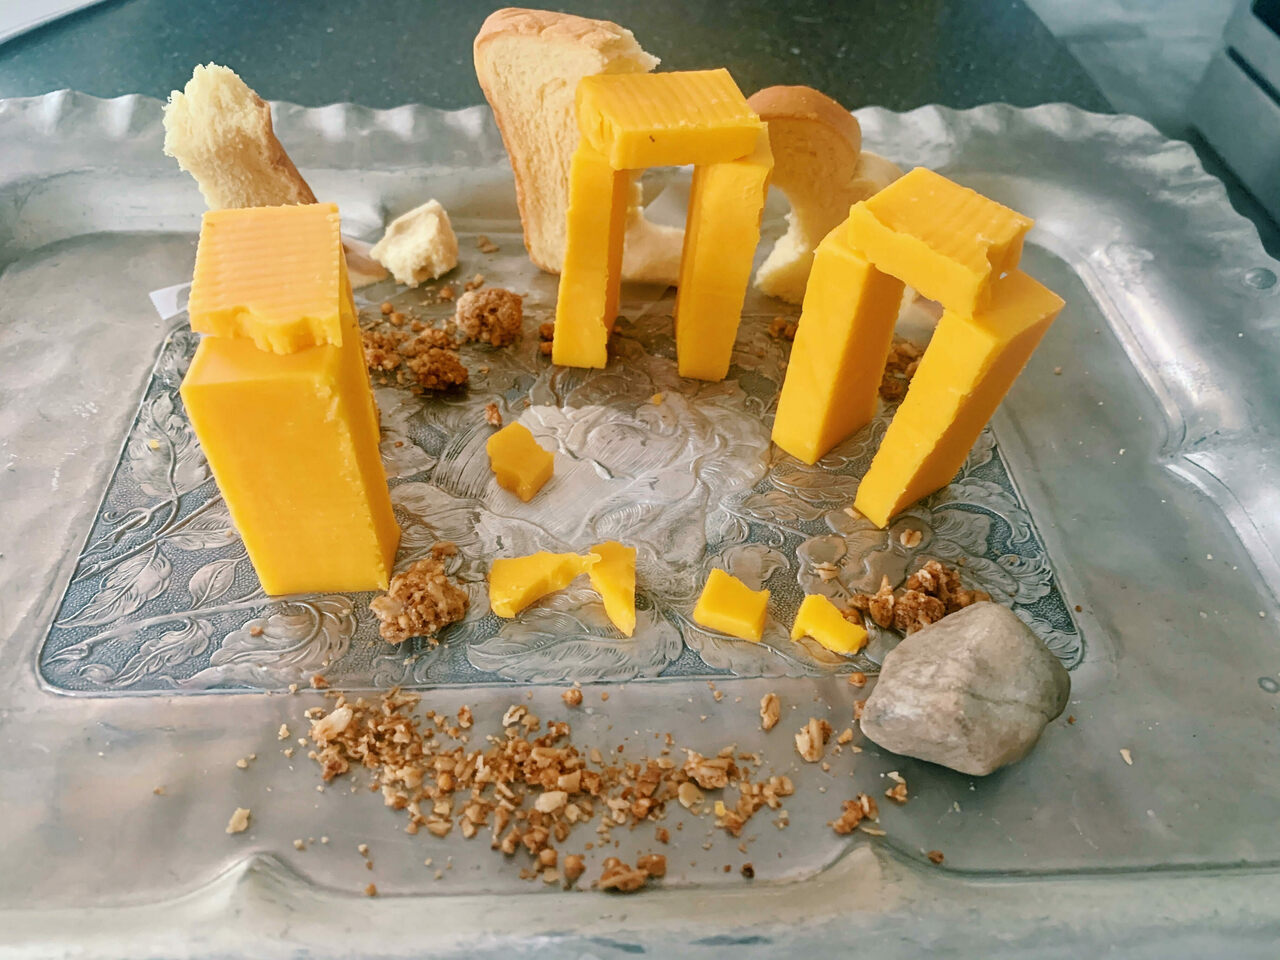 This cheese, granola, and bread creation was made by Alexandra McNamara in Tappan, New York.